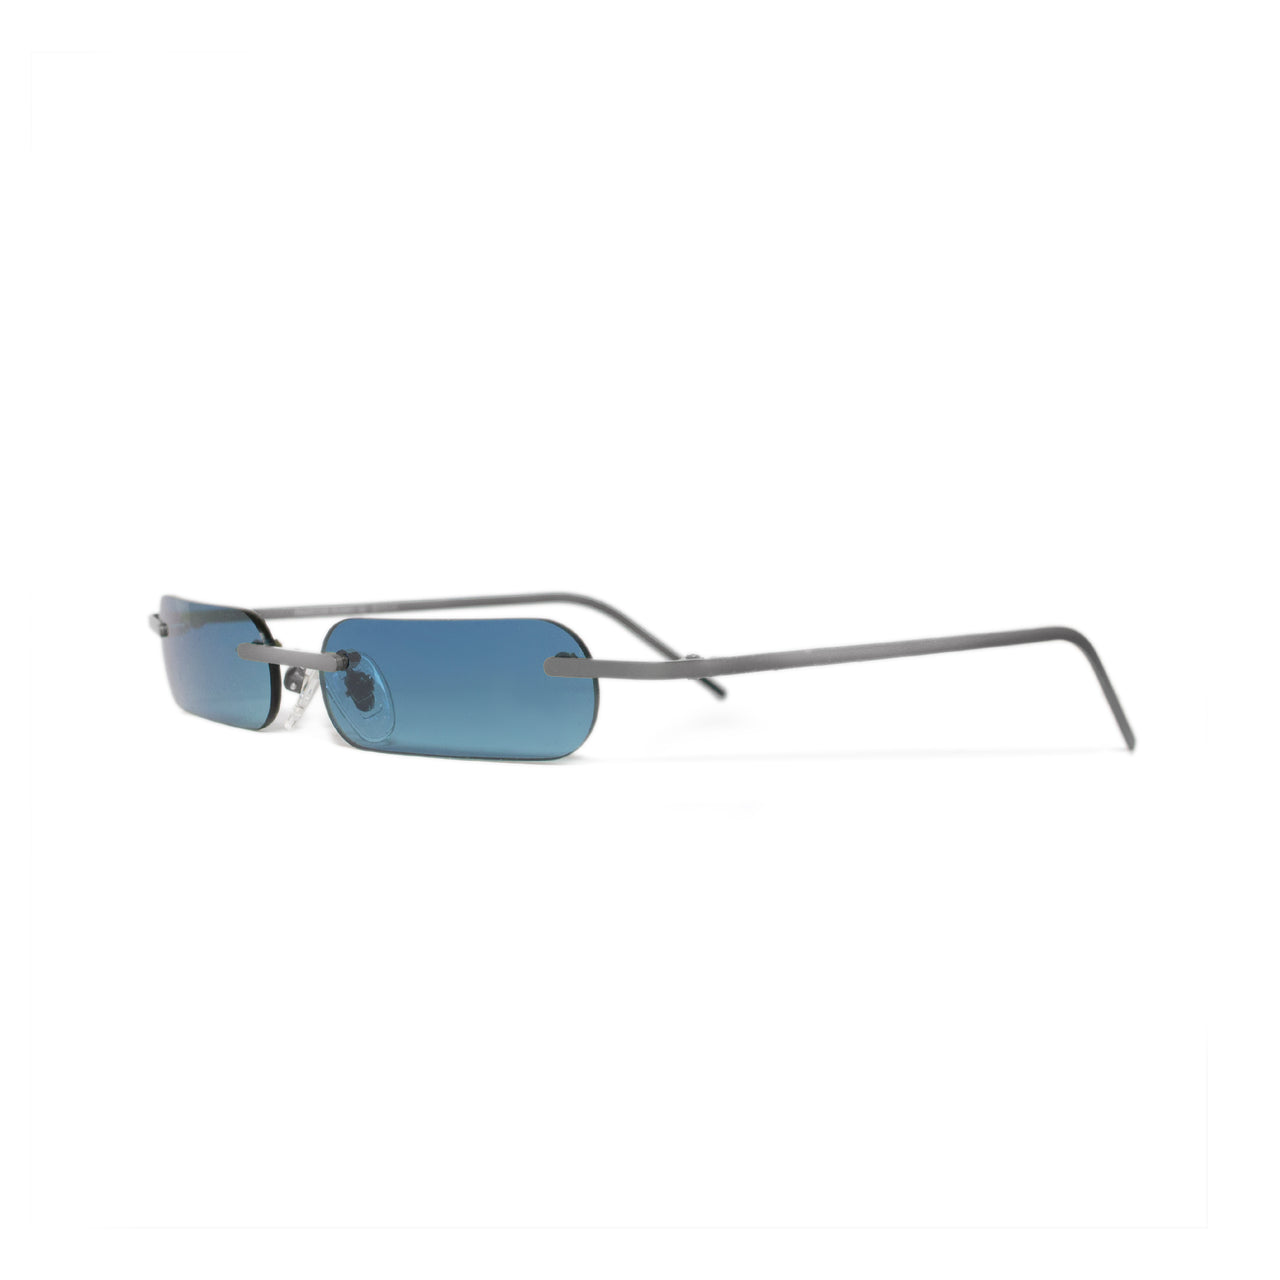 Metal. Polished Silver. Ocean Lens. - BLYSZAK eyewear eyewear - eyewear, optical, sunglasses